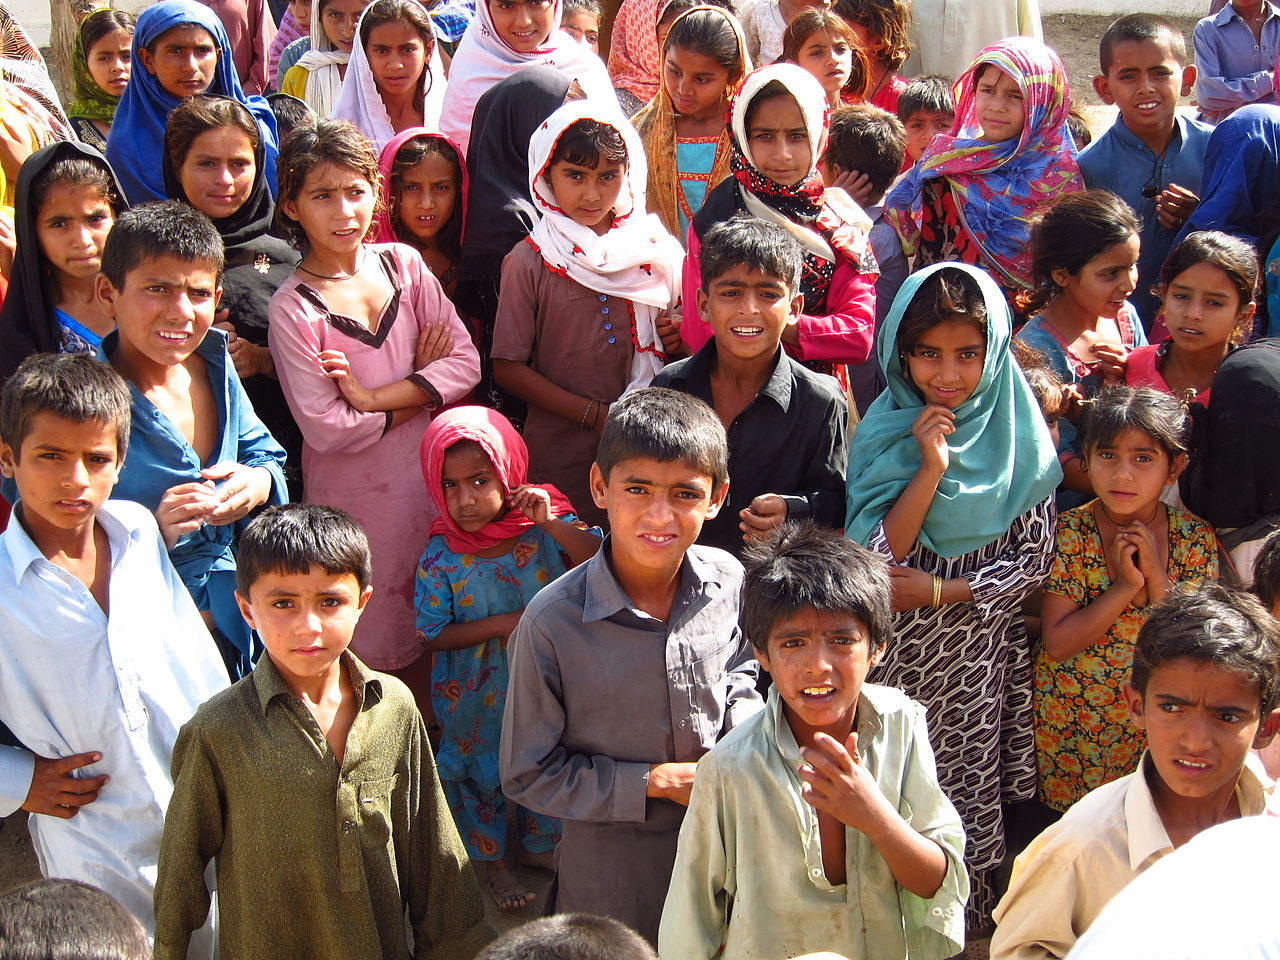 https://thesubmarine.it/wp-content/uploads/2018/02/Children_in_a_village_Sindh_Pakistan_April_2012_8405077775-1280x960.jpg